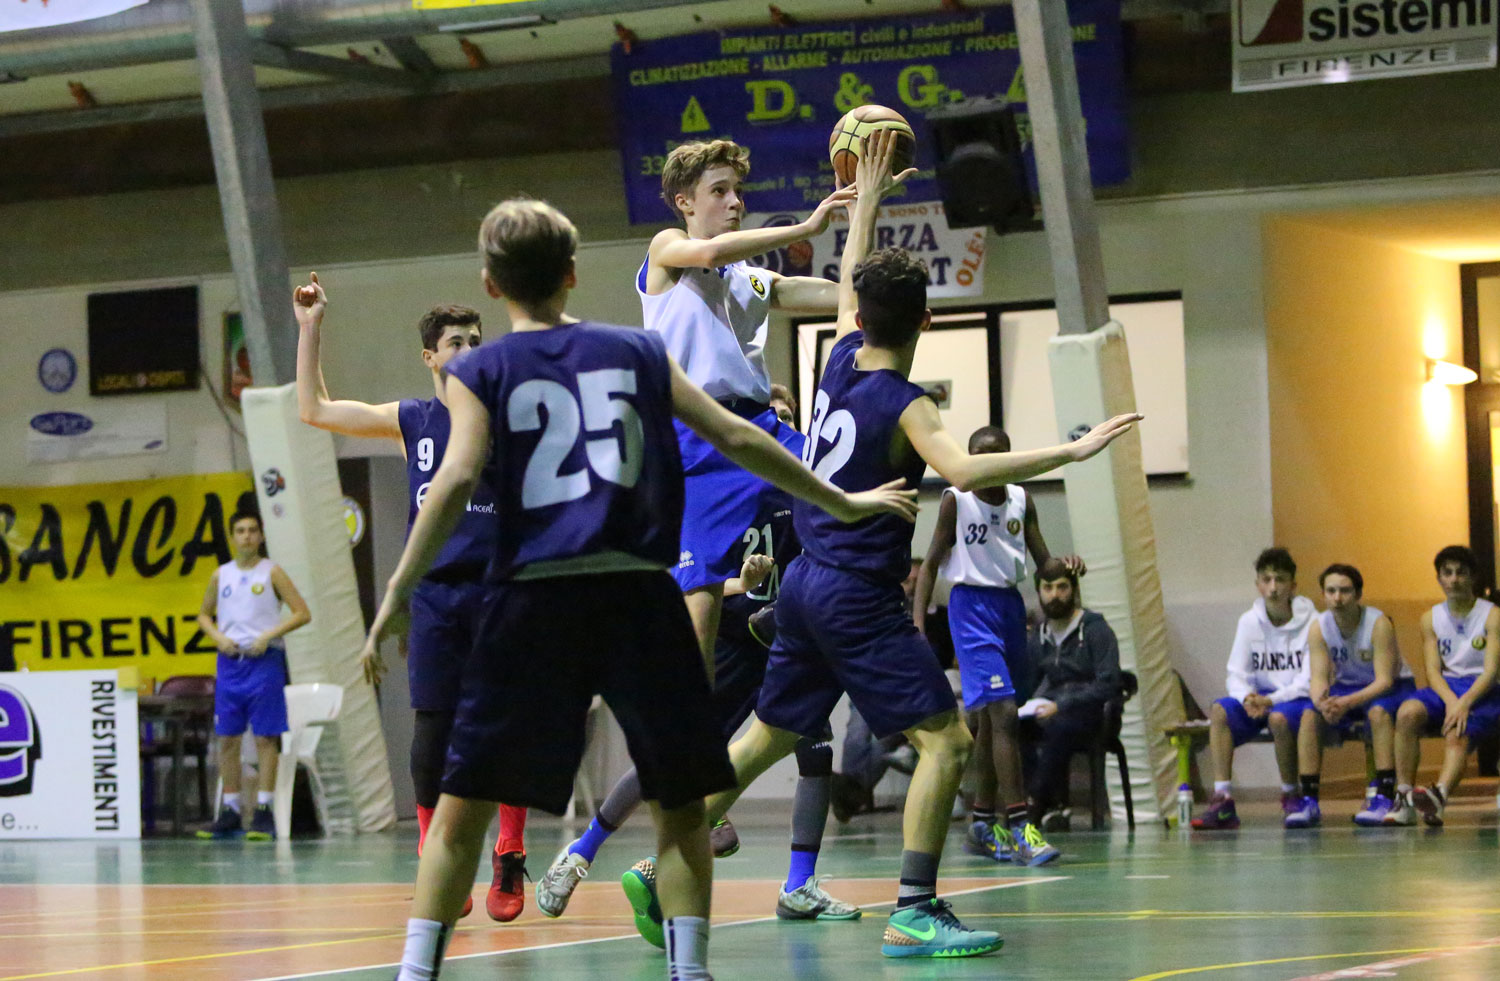 under14_sancat_avellini2_2015-16